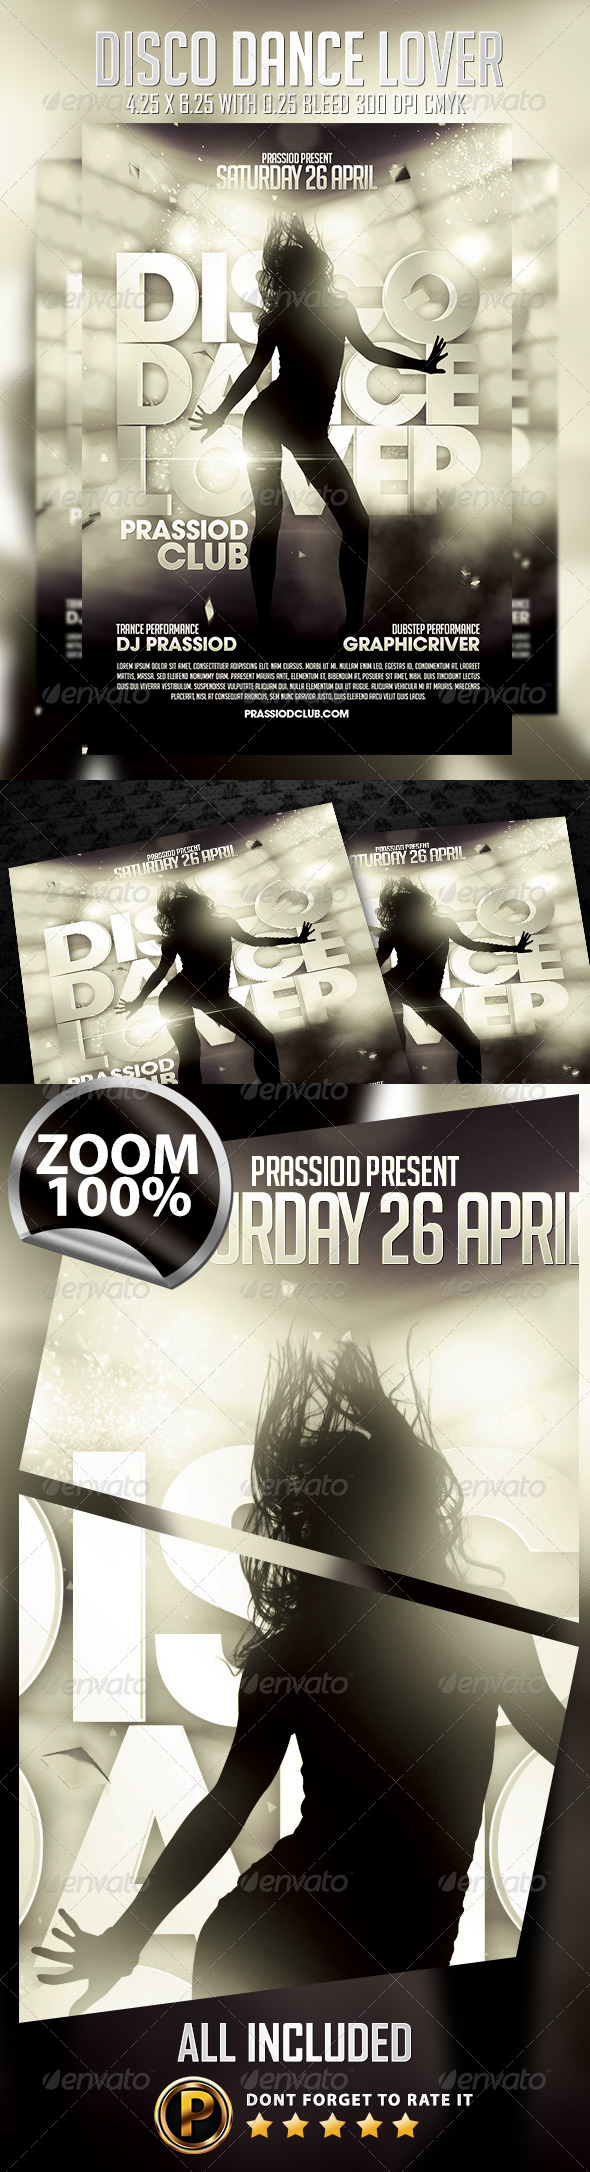 Disco Dance Lover Flyer Template - Clubs & Parties Events